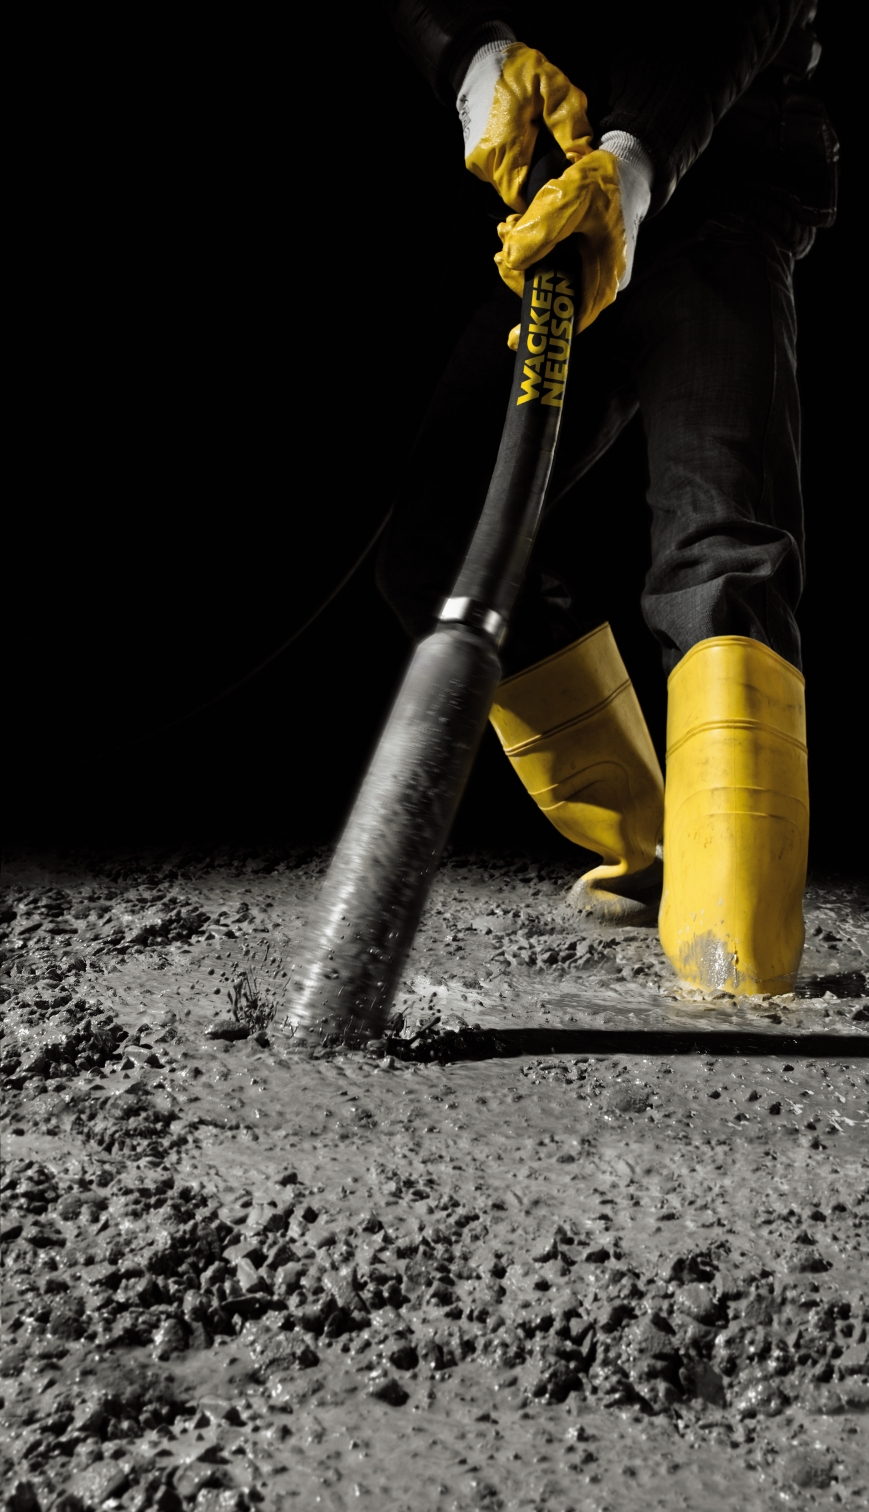 Tips for concrete consolidation with internal vibrators